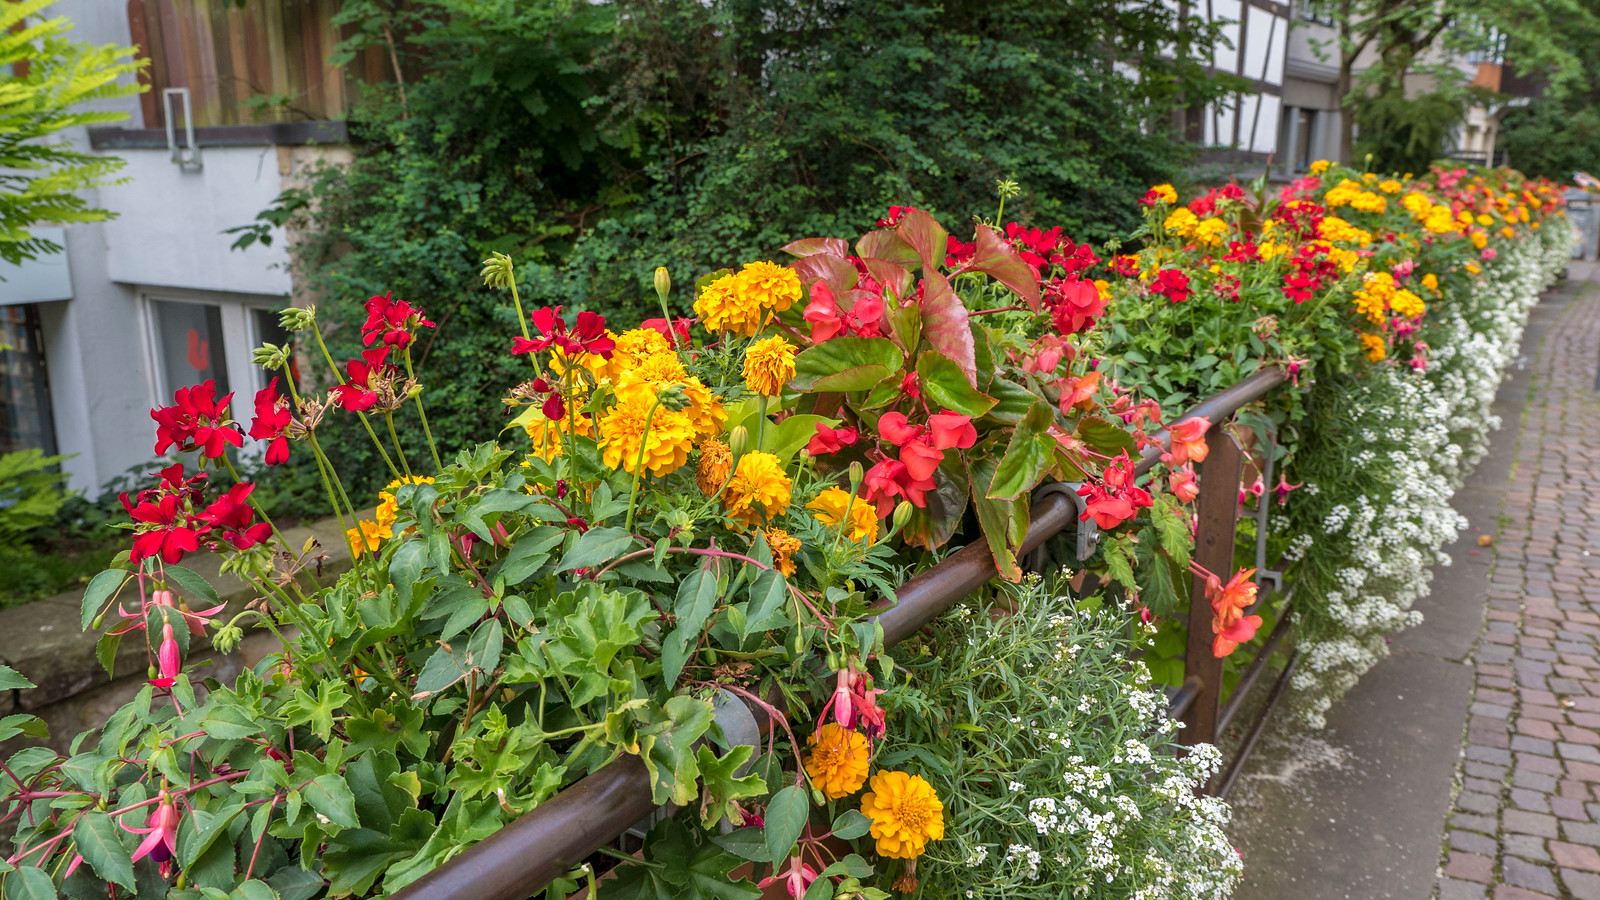 Colourful flowers in Tubingen, Germany. Things to do in Tubingen Germany.